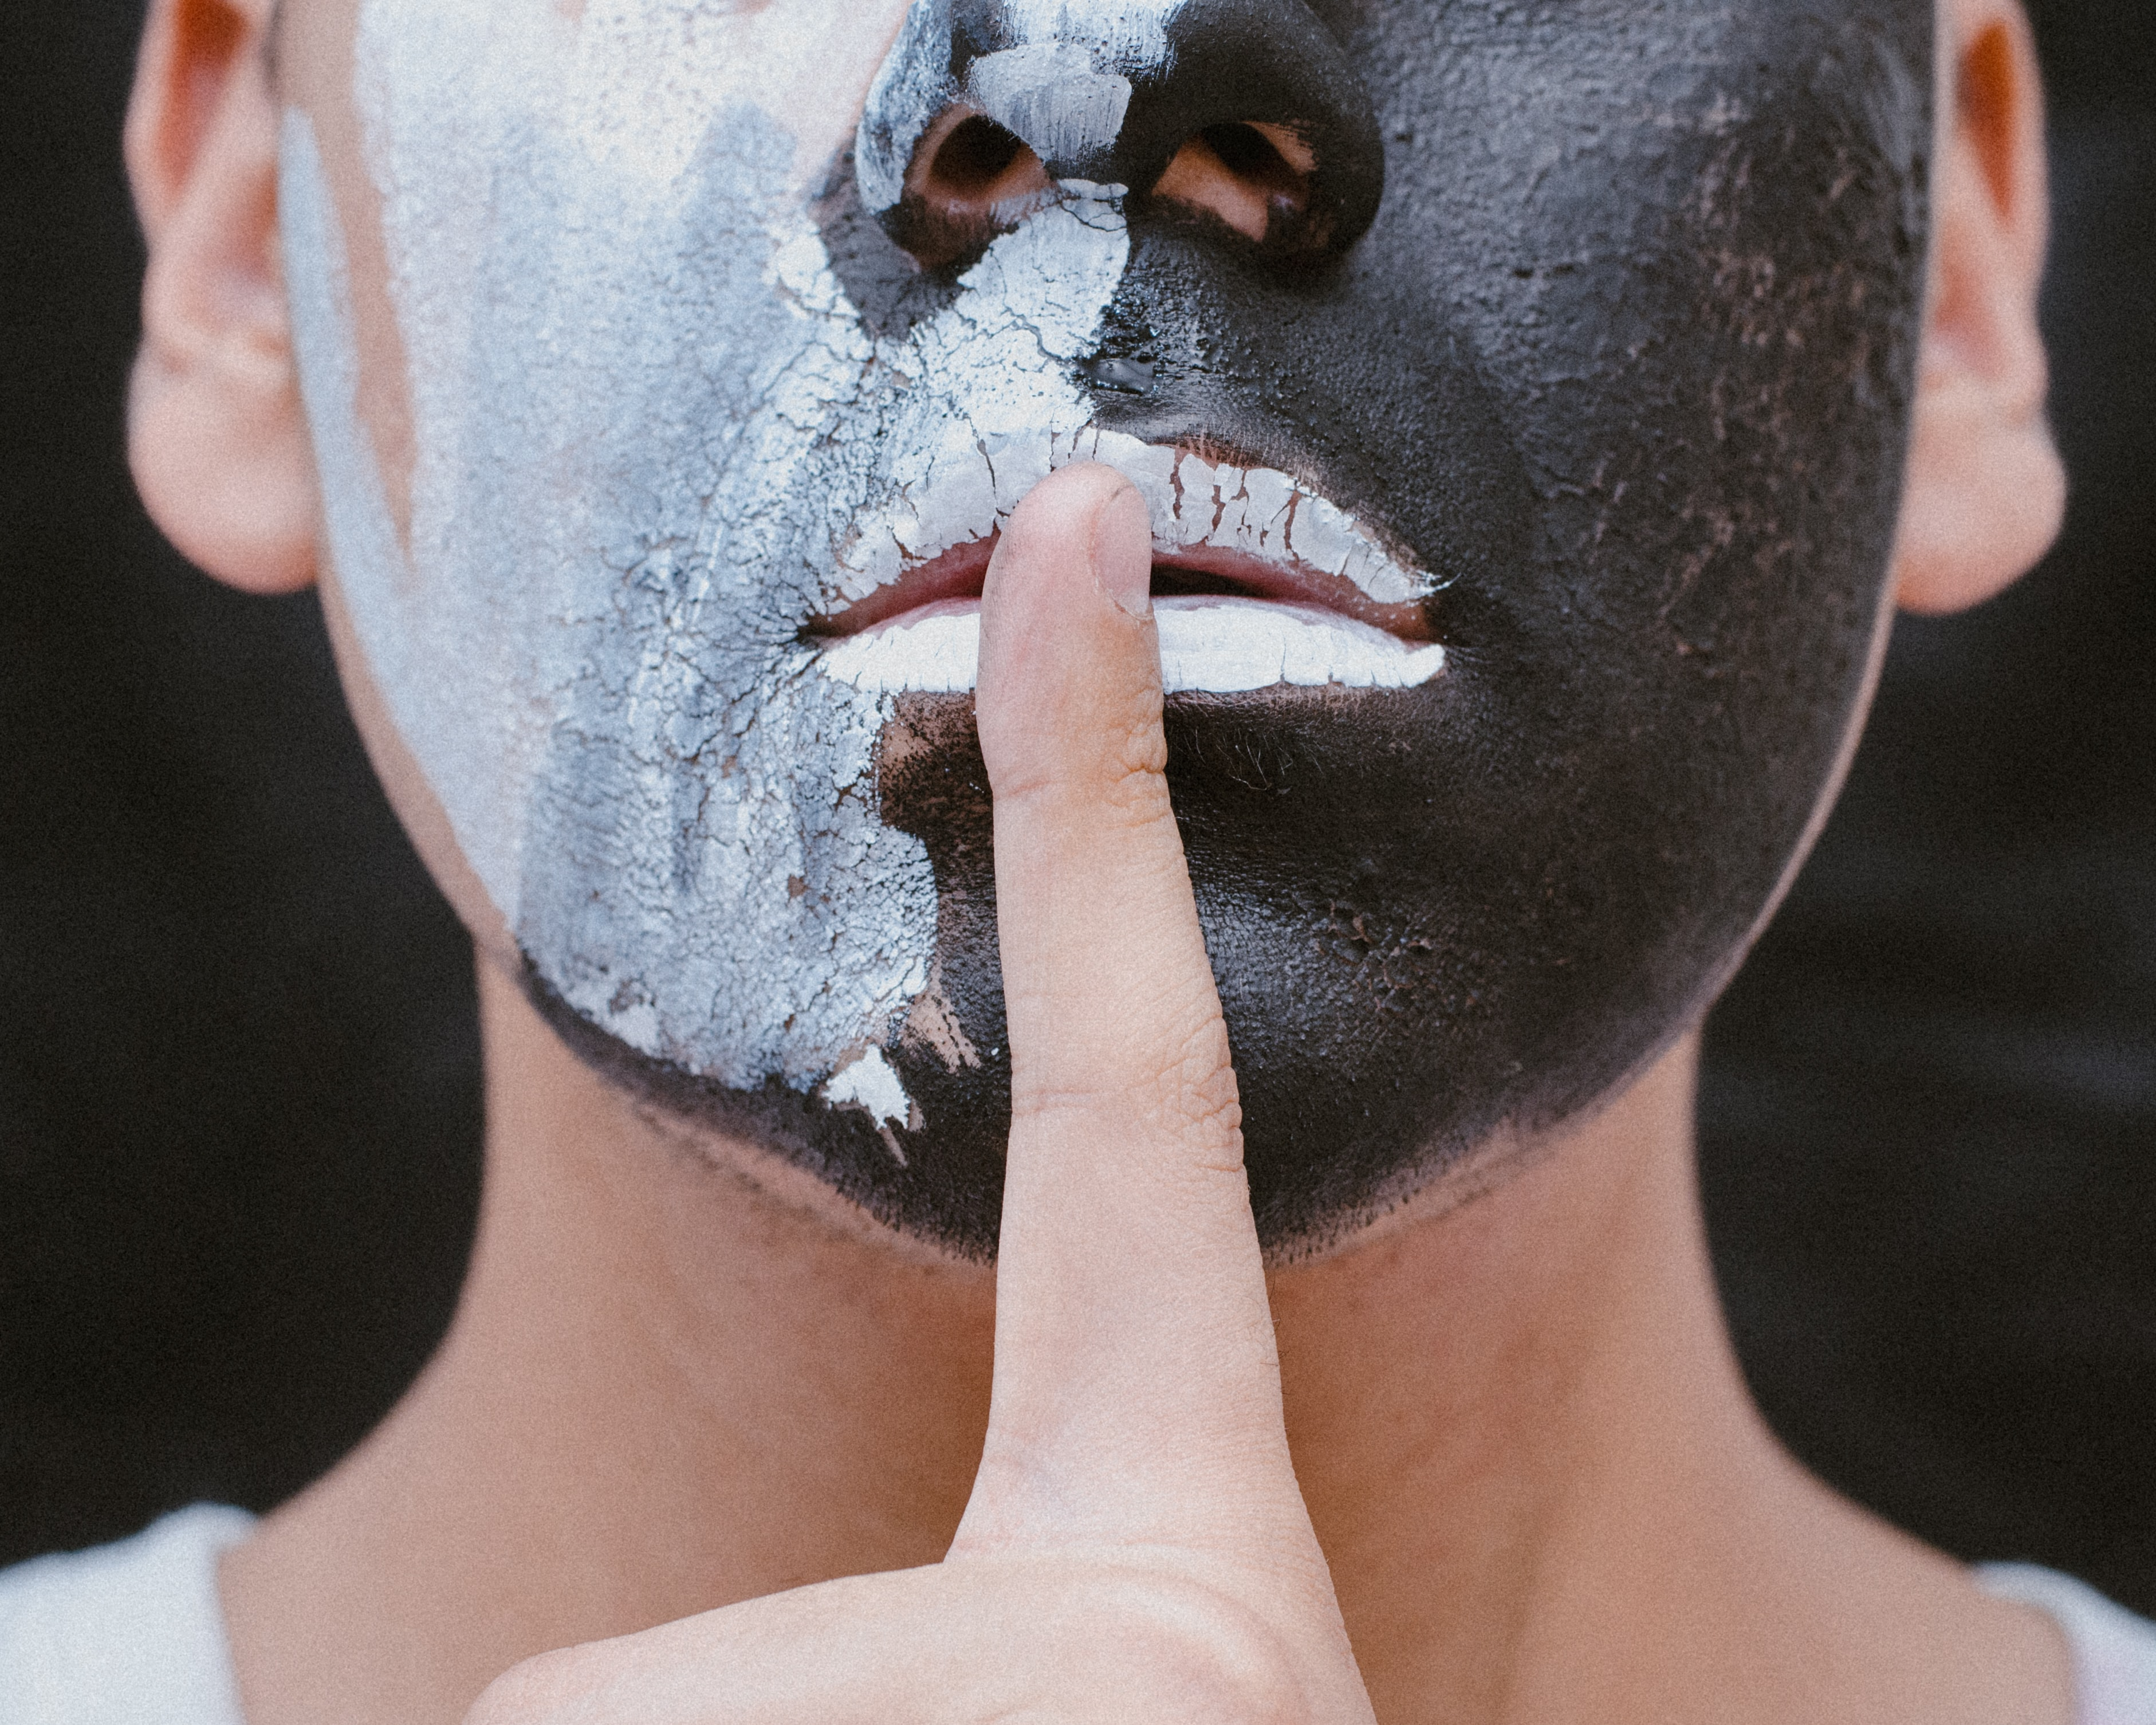 person with black and white face paint with finger on mouth doing the quiet gesture